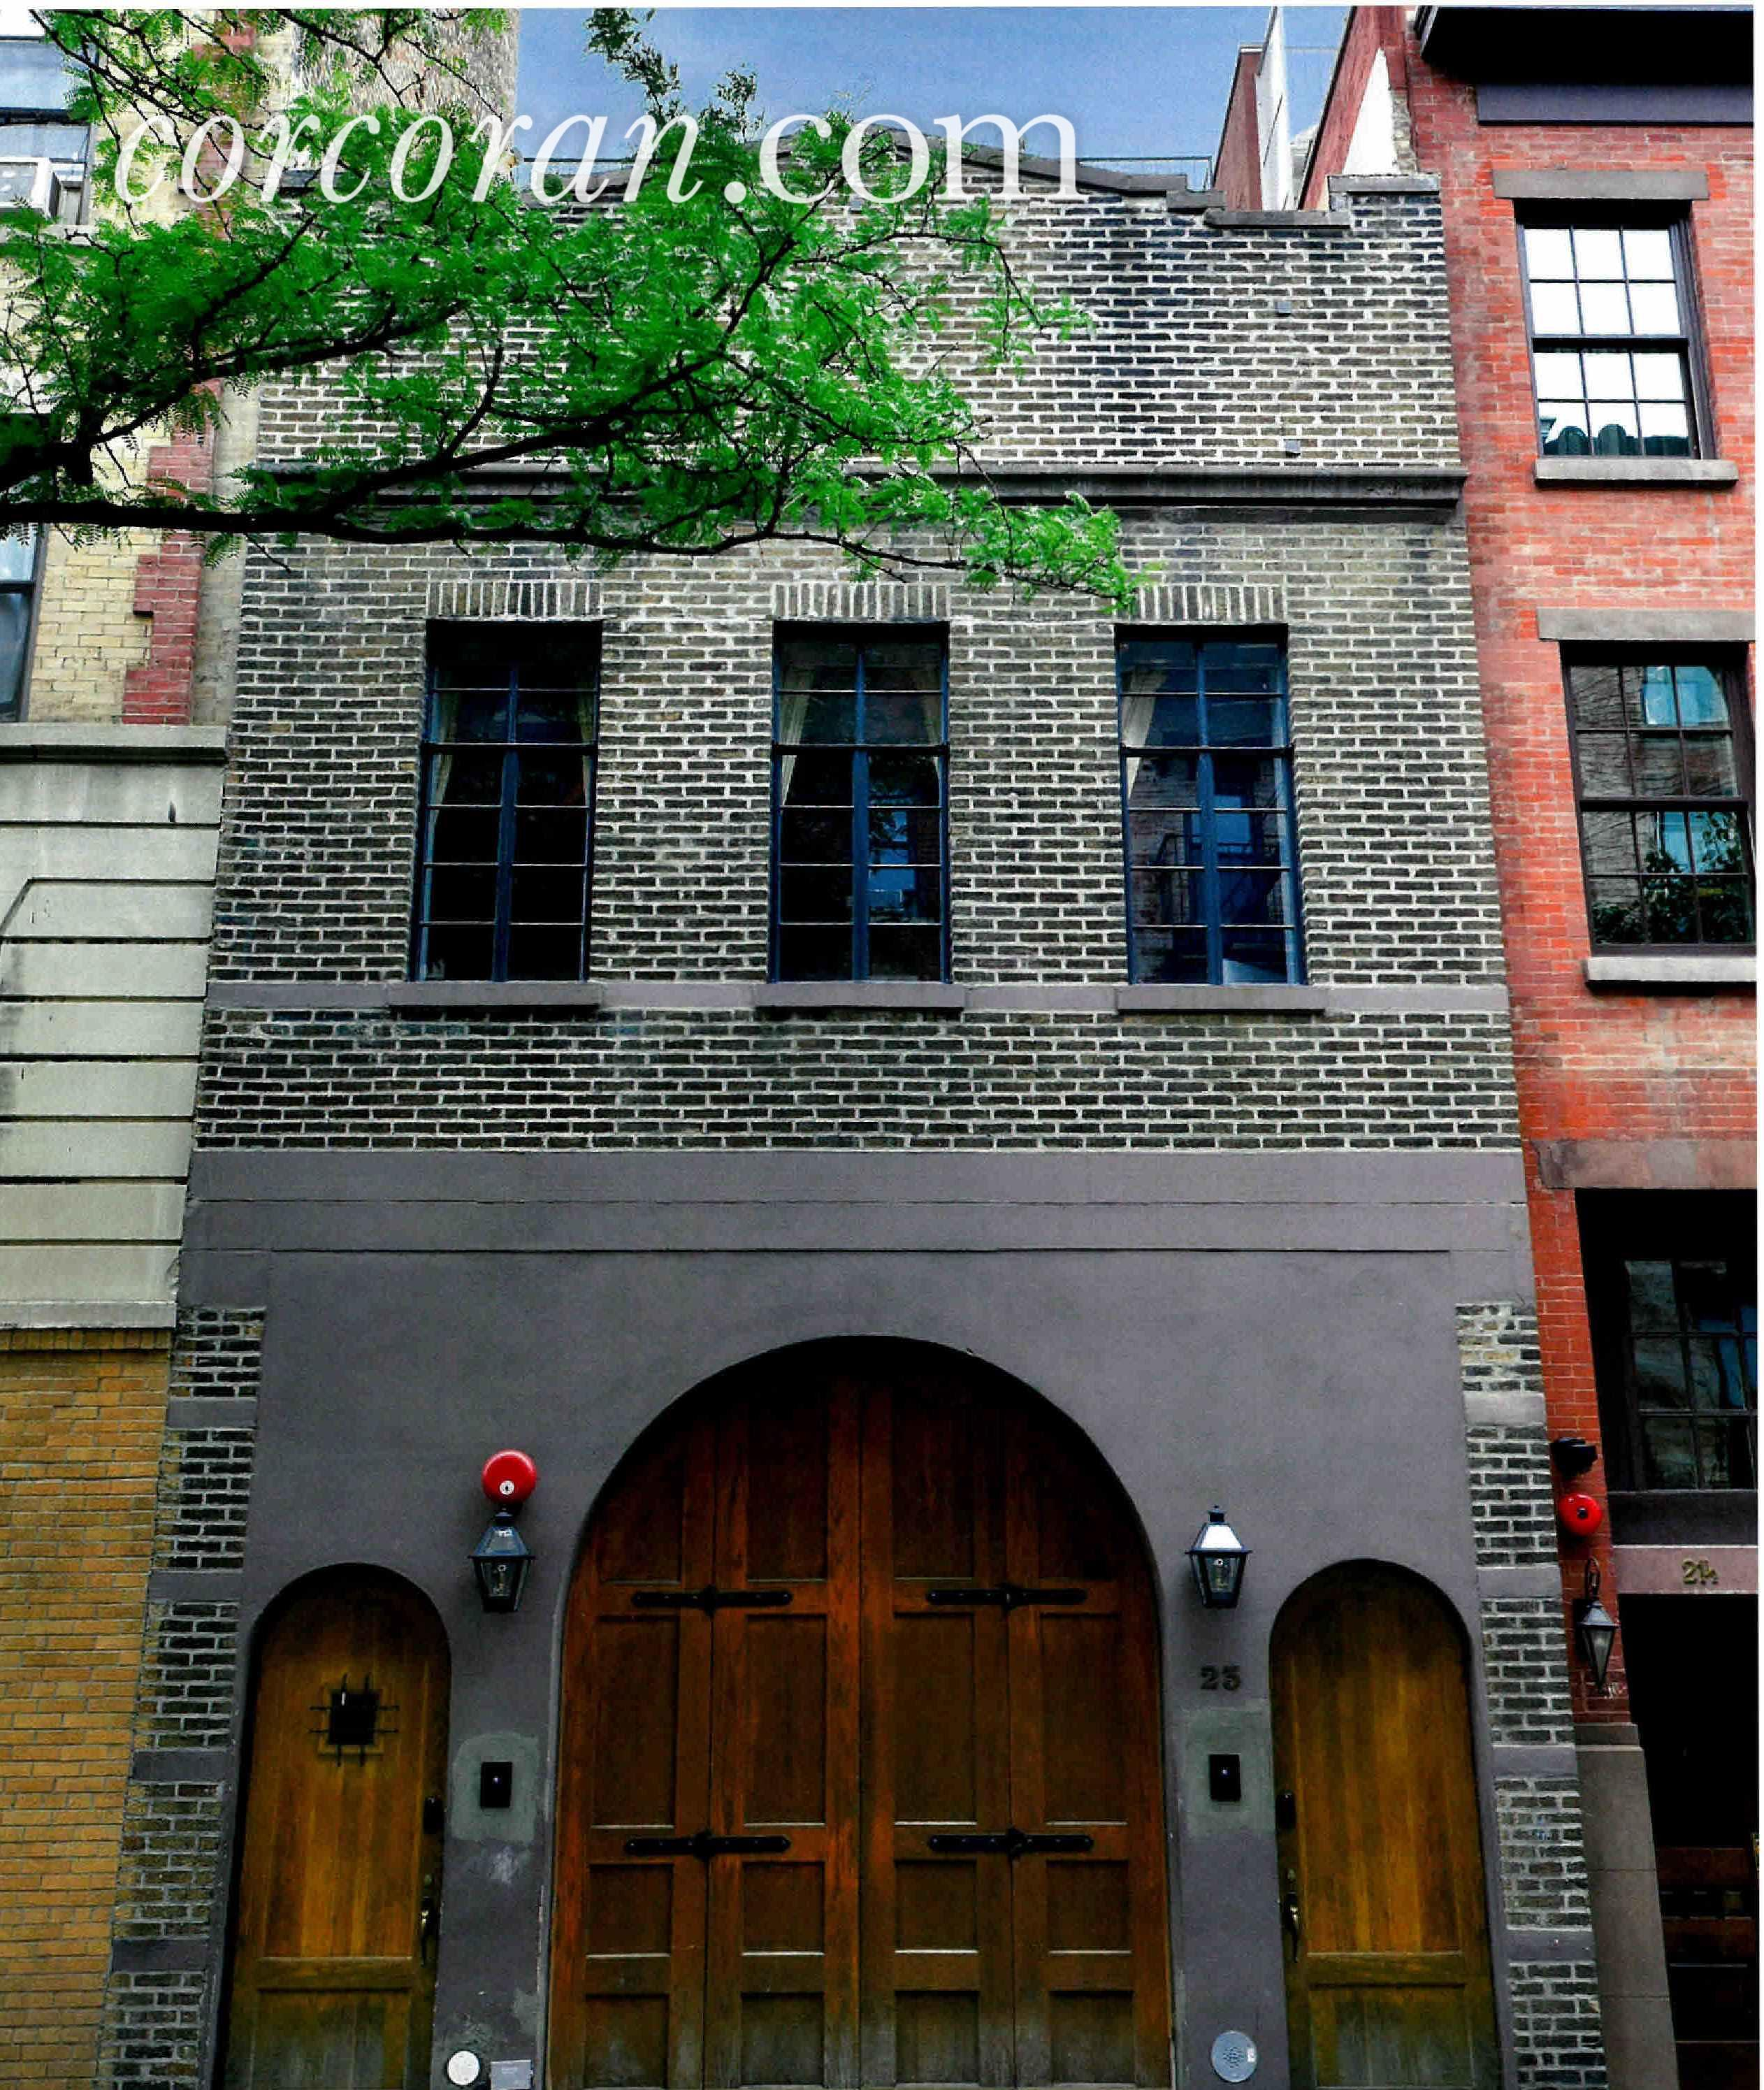 Apartment Renting Nyc: 23 Cornelia St. In West Village : Sales, Rentals